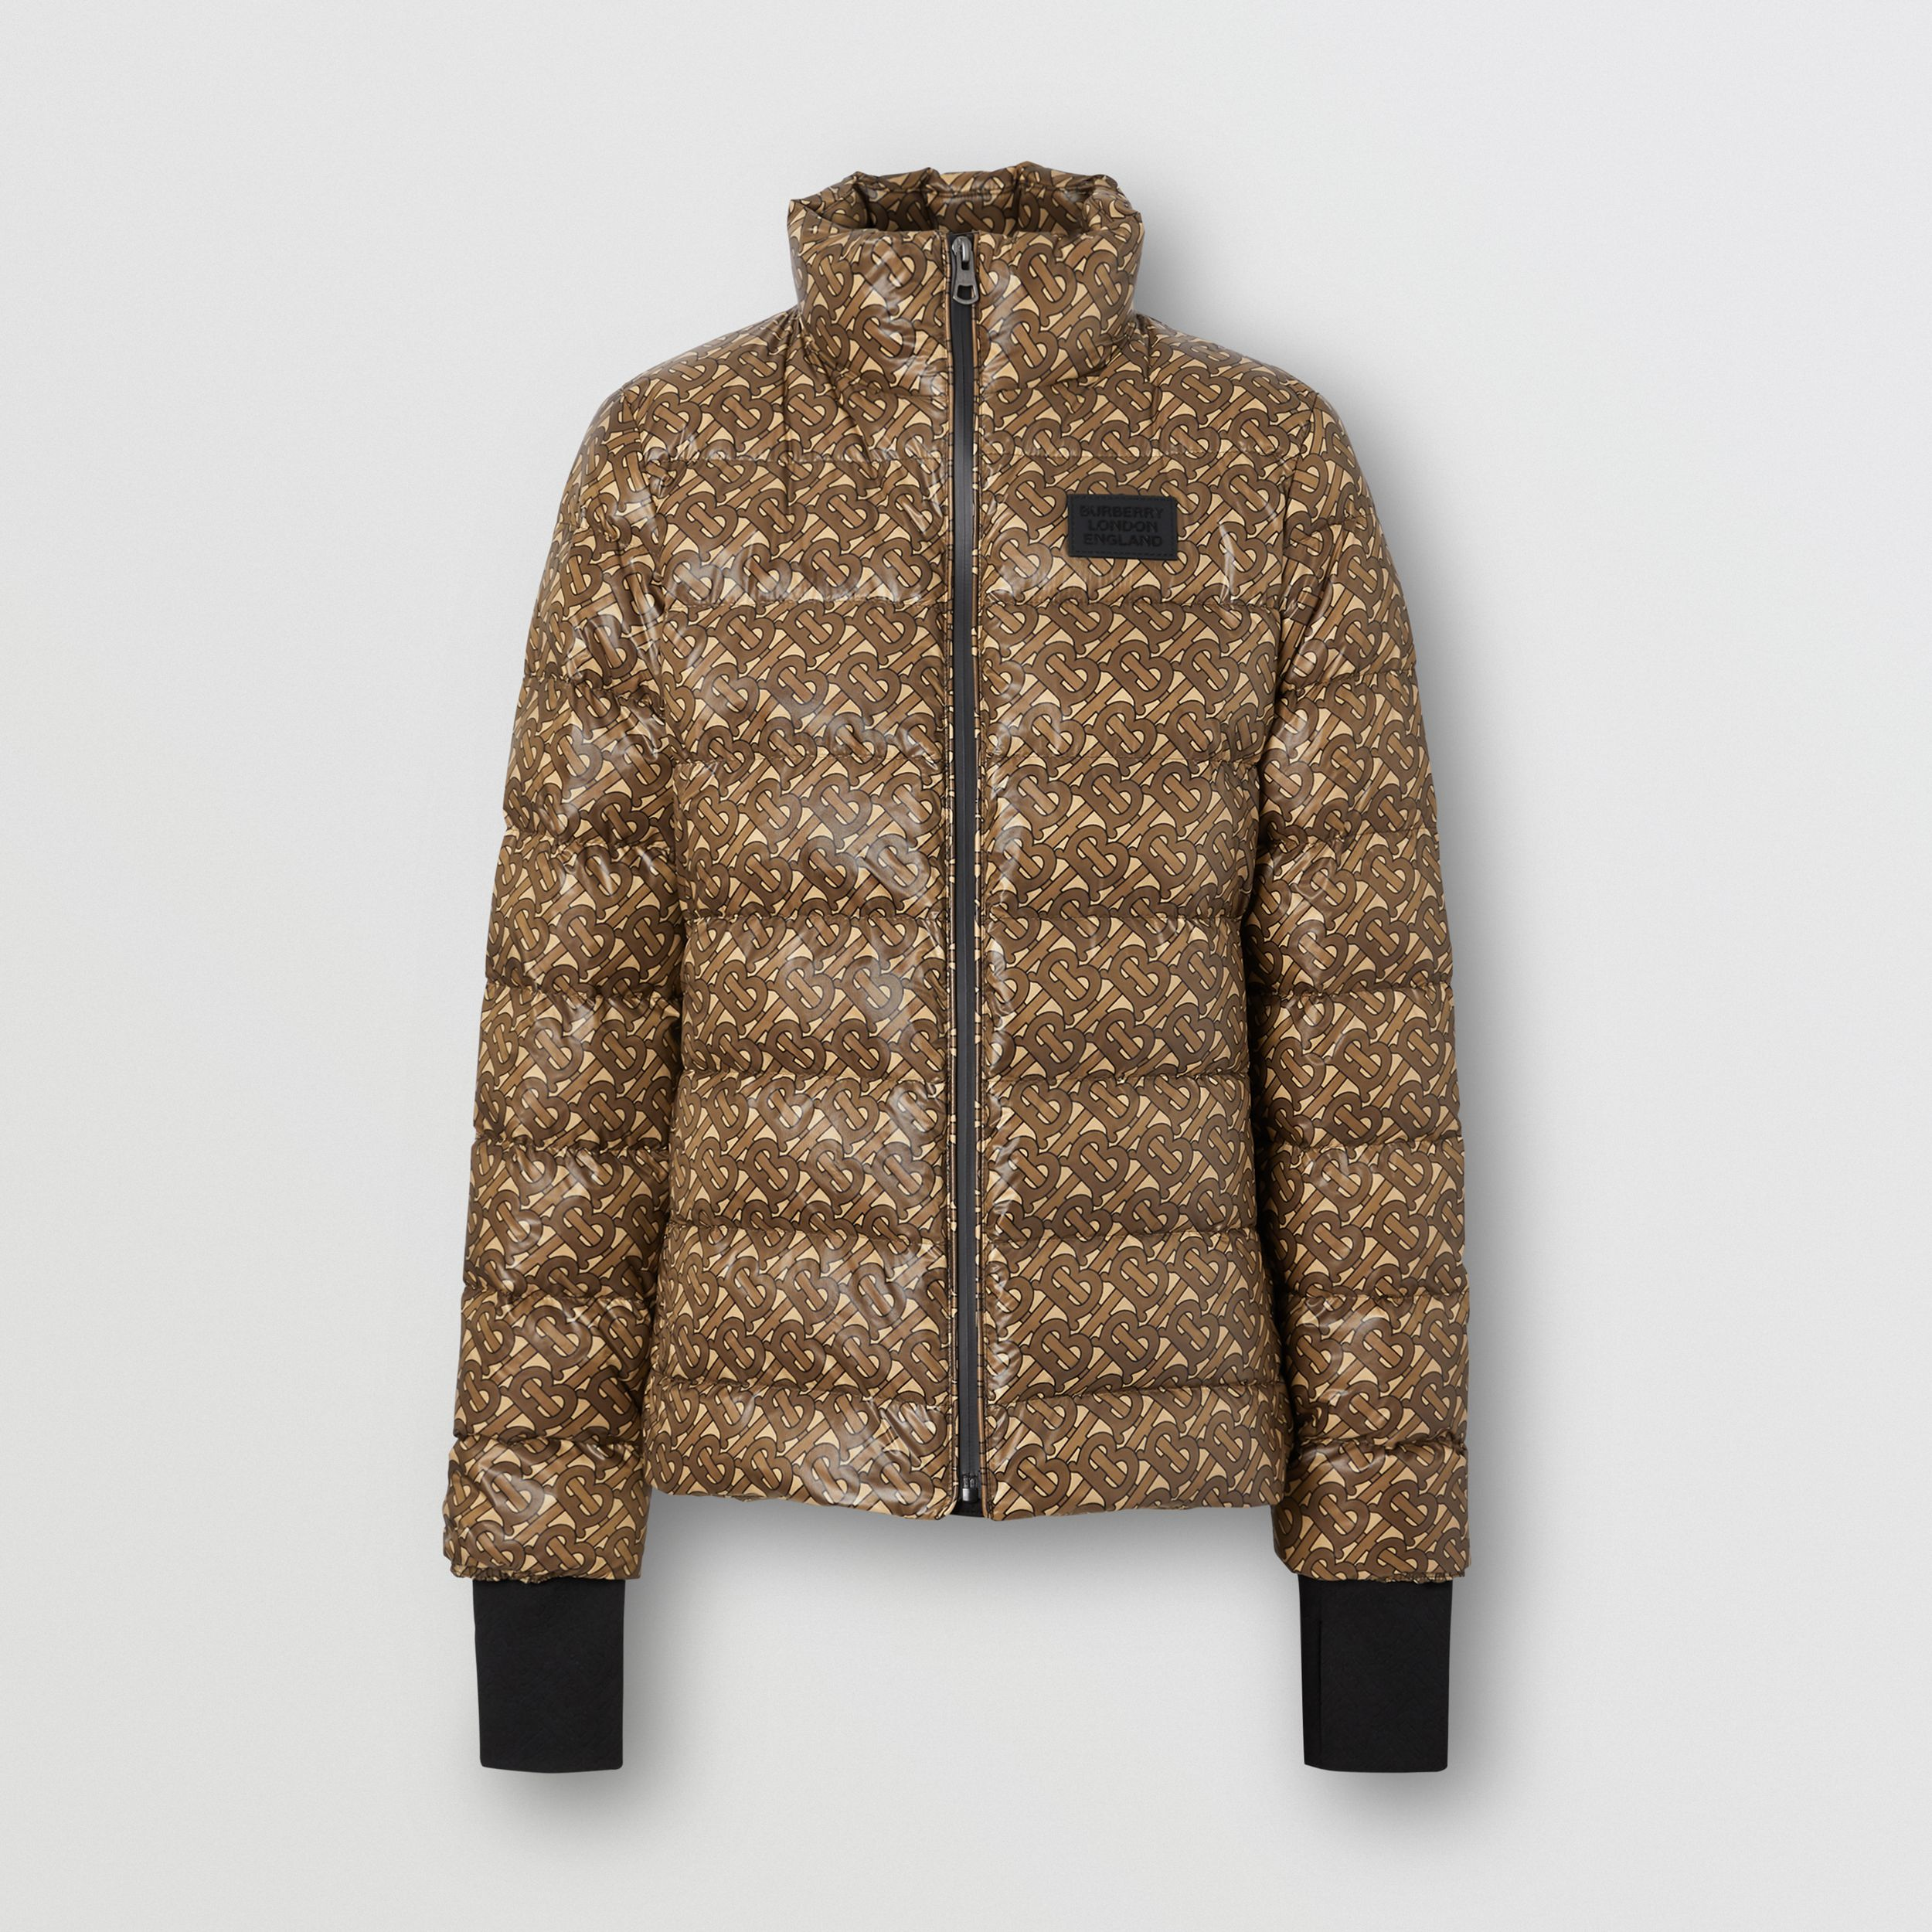 Monogram Print Nylon Puffer Jacket in Bridle Brown - Women | Burberry - 4